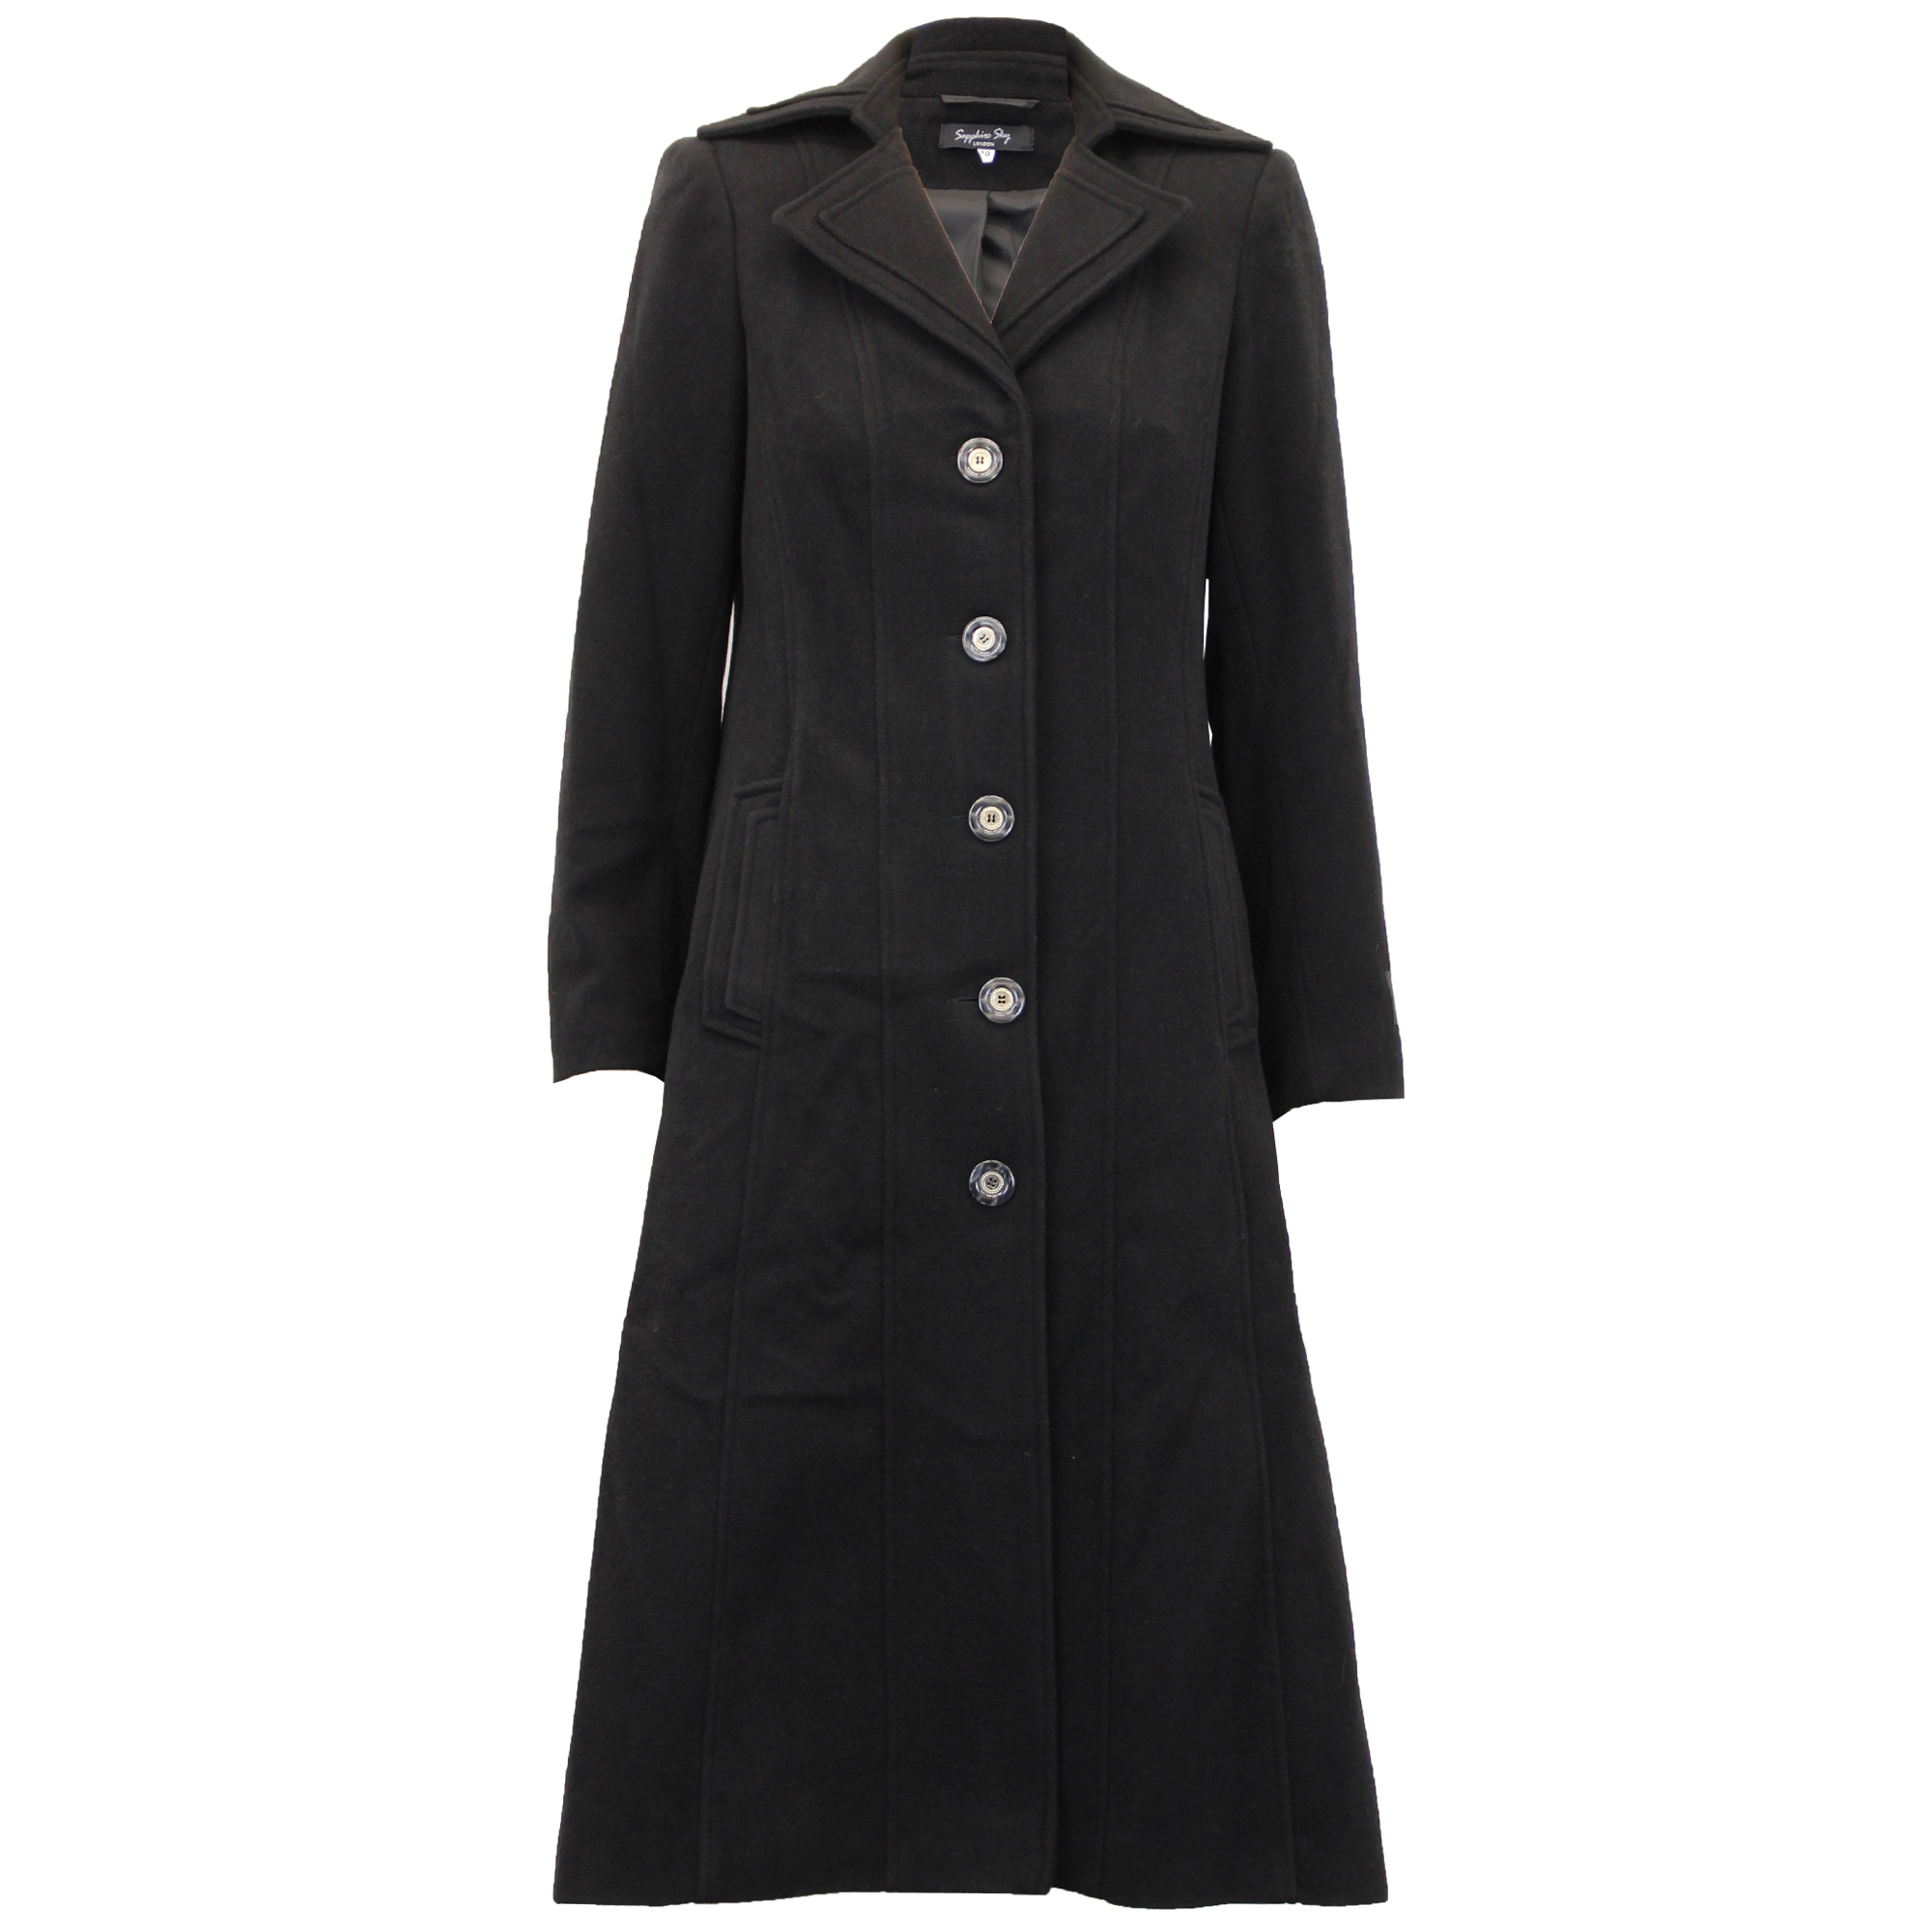 Winter Overcoat For Women, Wholesale Various High Quality Winter Overcoat For Women Products from Global Winter Overcoat For Women Suppliers and Winter Overcoat For Women Factory,Importer,Exporter at ggso.ga